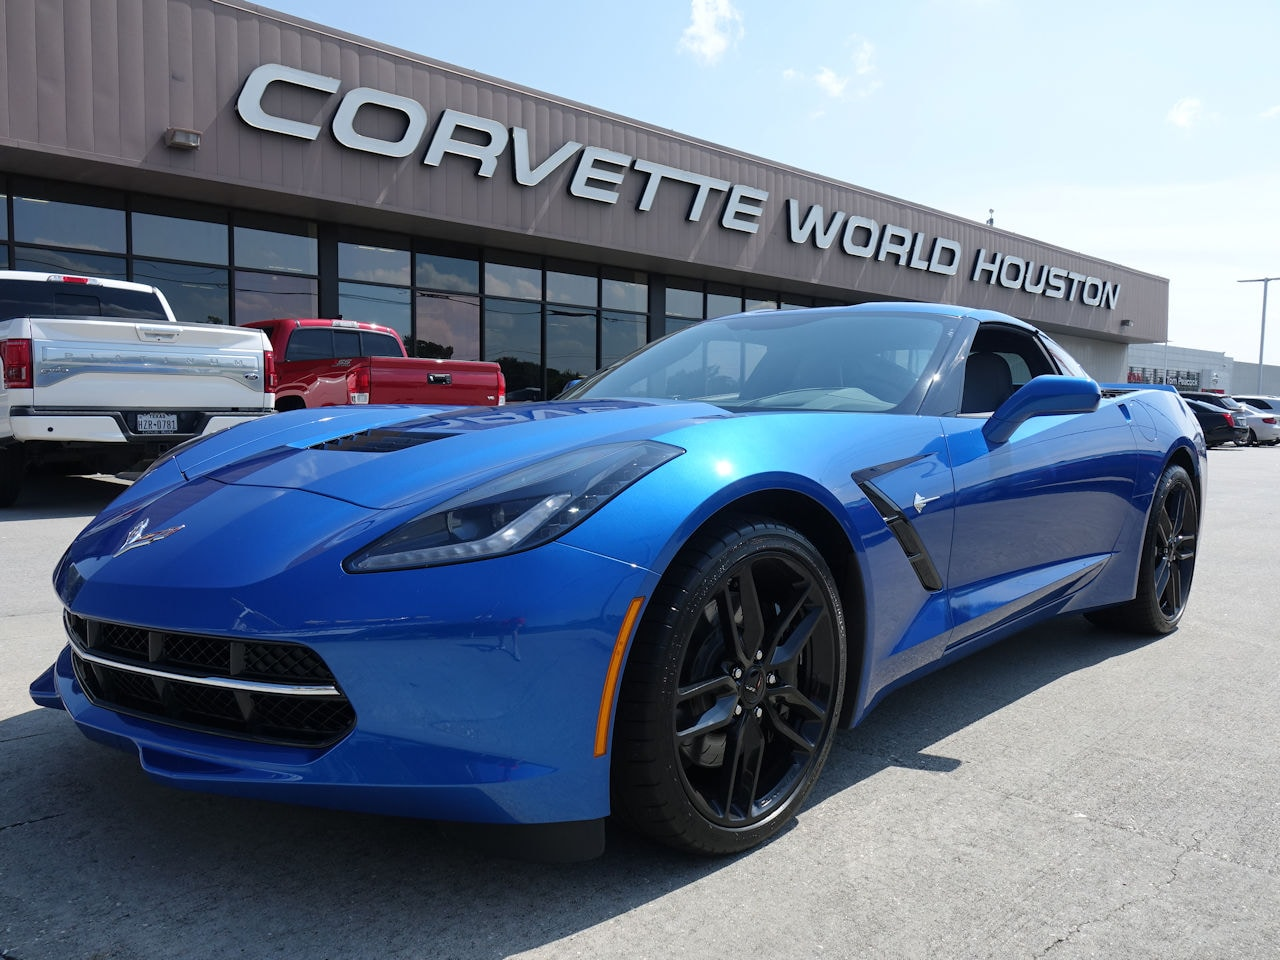 2015 Chevrolet Corvette Stingray Z51 Coupe 2LT Comp Seats Coupe